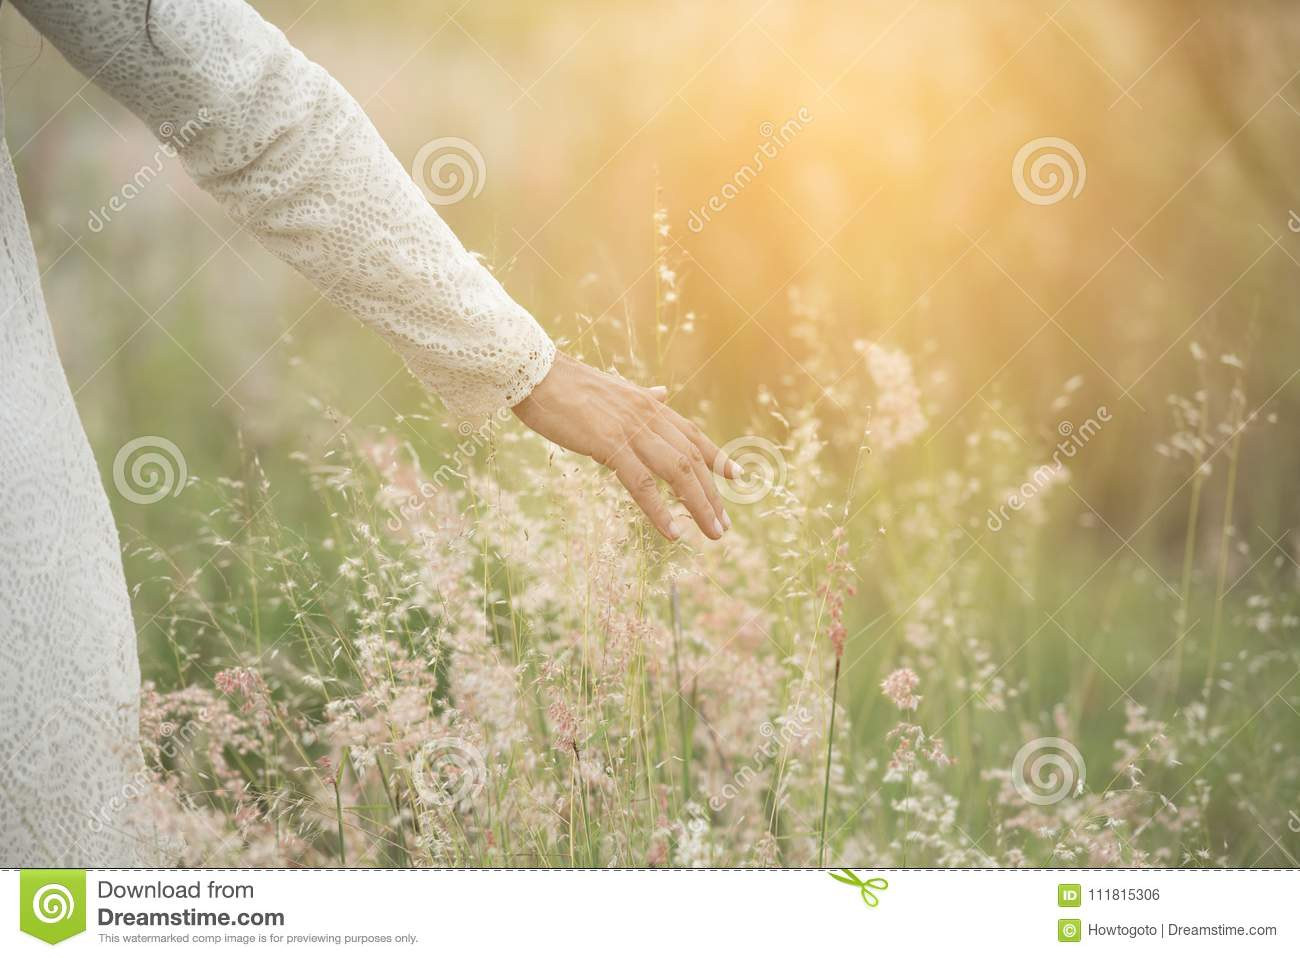 Blurred hand of young beautiful woman touching wheat spikes with her hand at sunset.